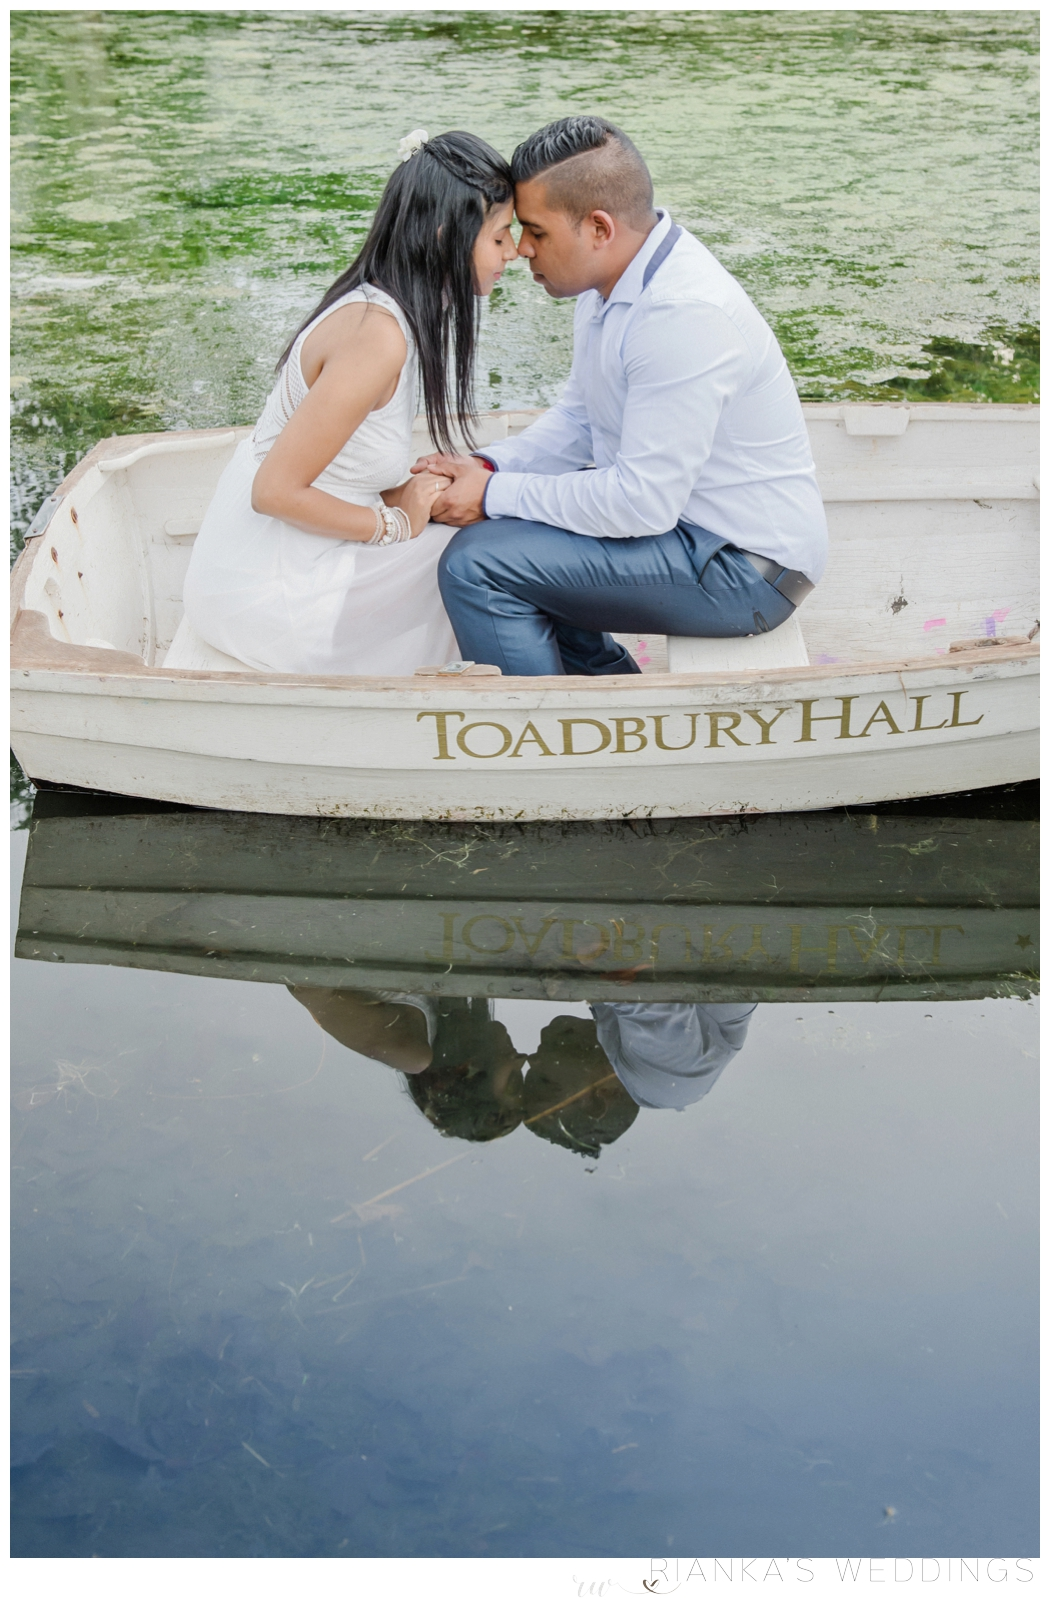 riankas-wedding-photography-toadbury-hall-engagement-risha-kreyan00021